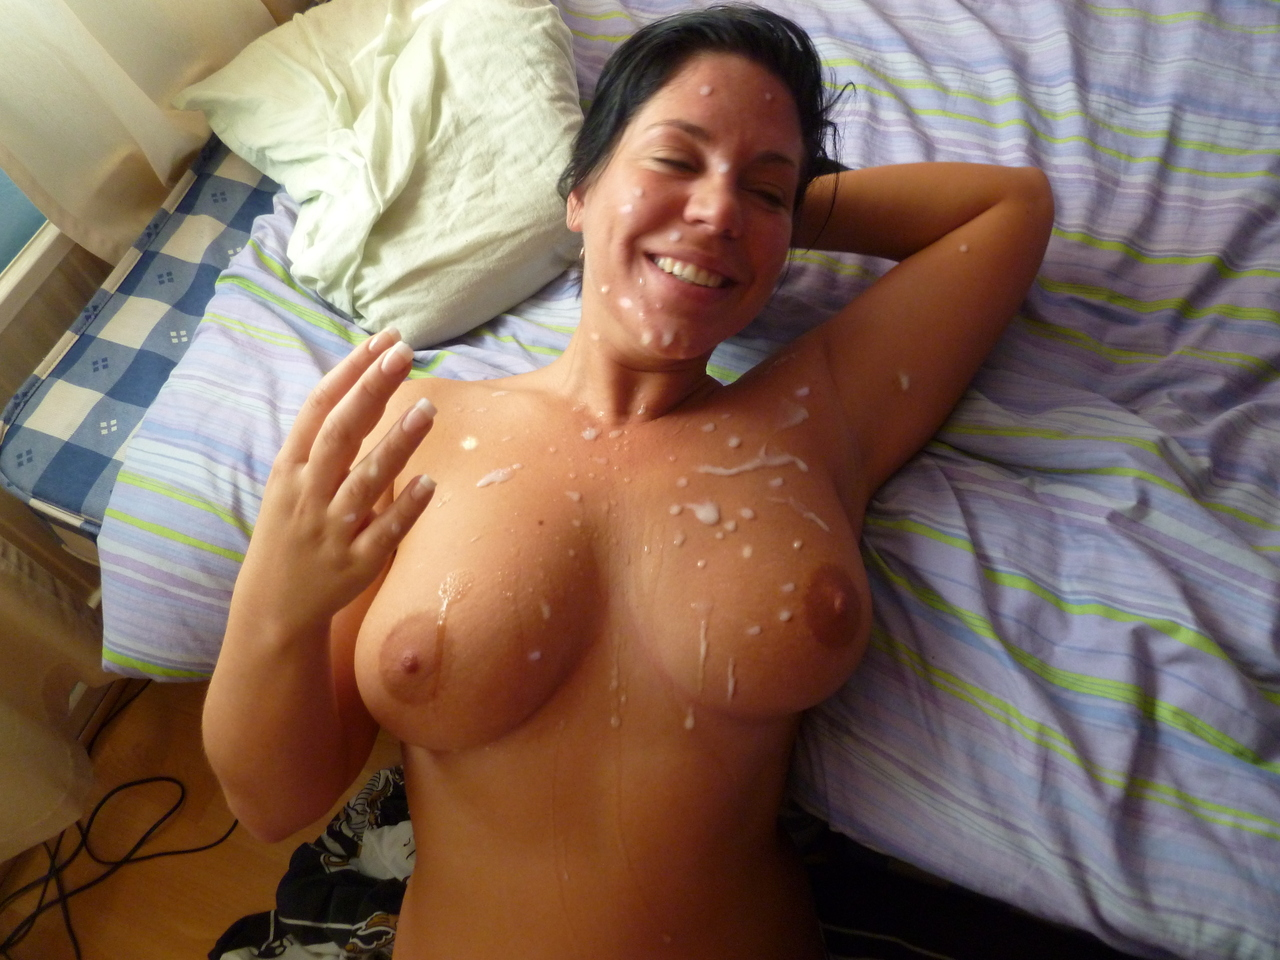 Huge facial cumshot for a hot amateur MILF | WifeBucket ...